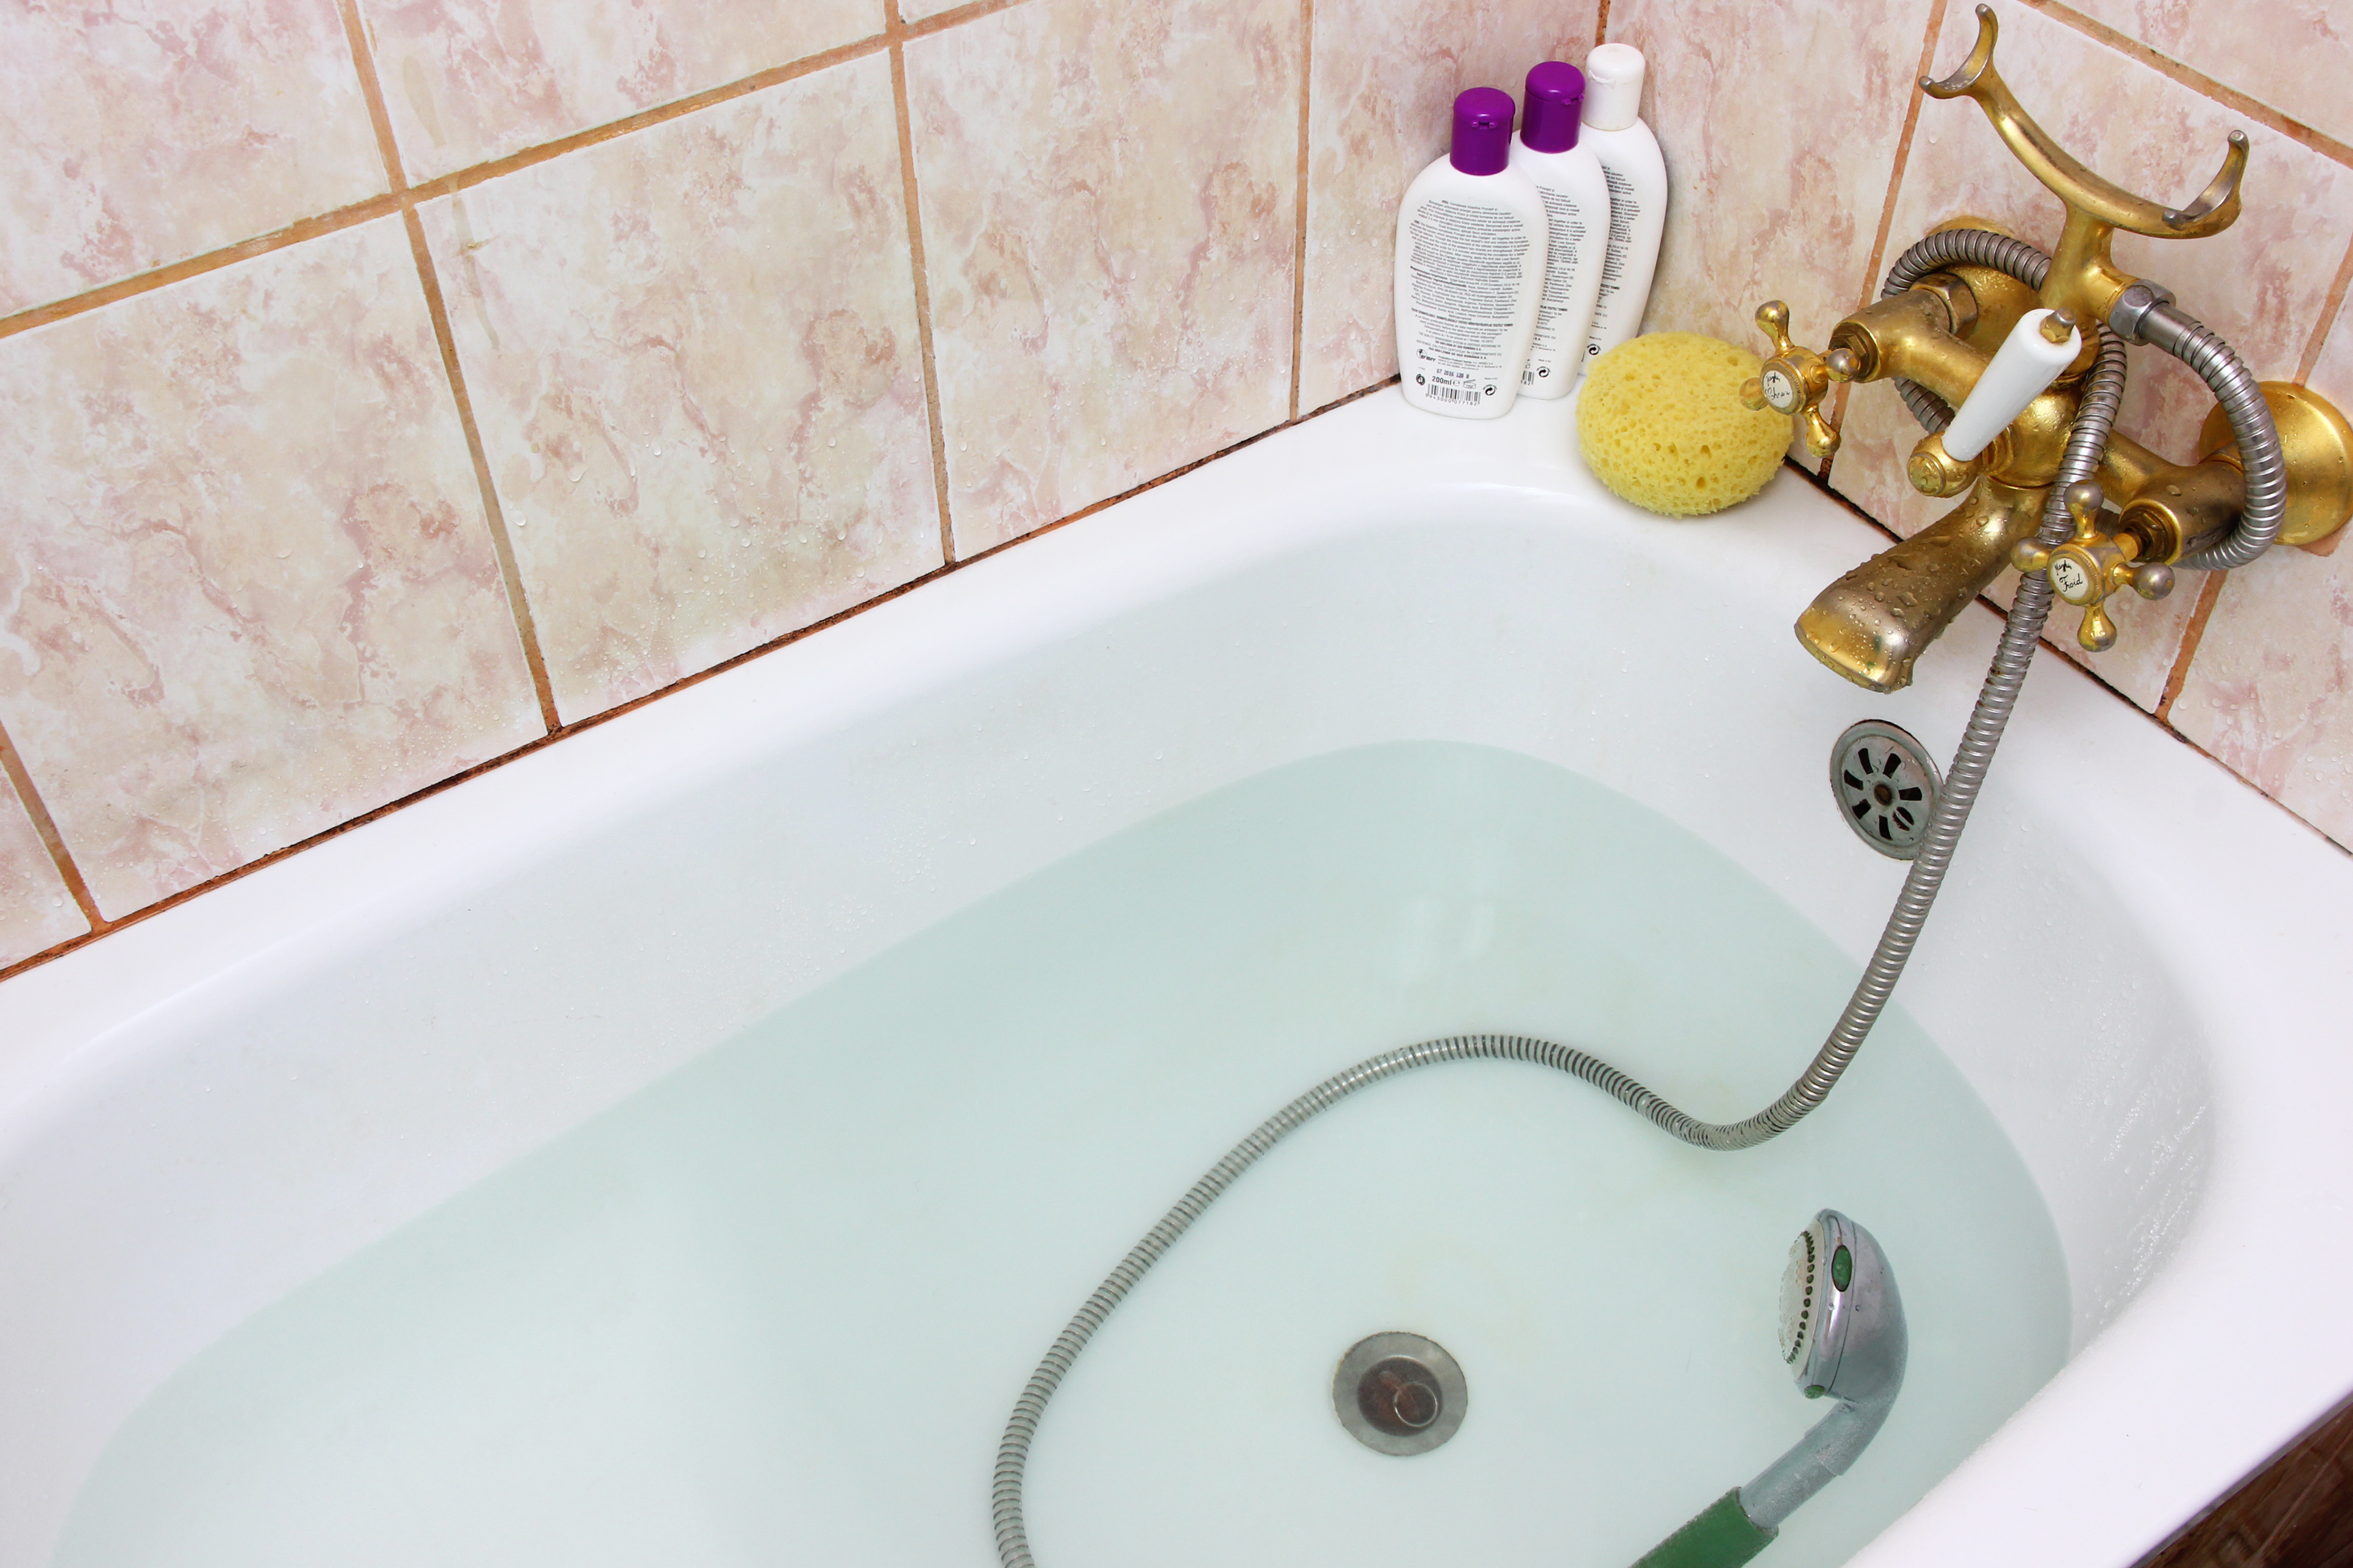 How To Clean A Shower Tub The Easy Way 4 Steps With Pictures